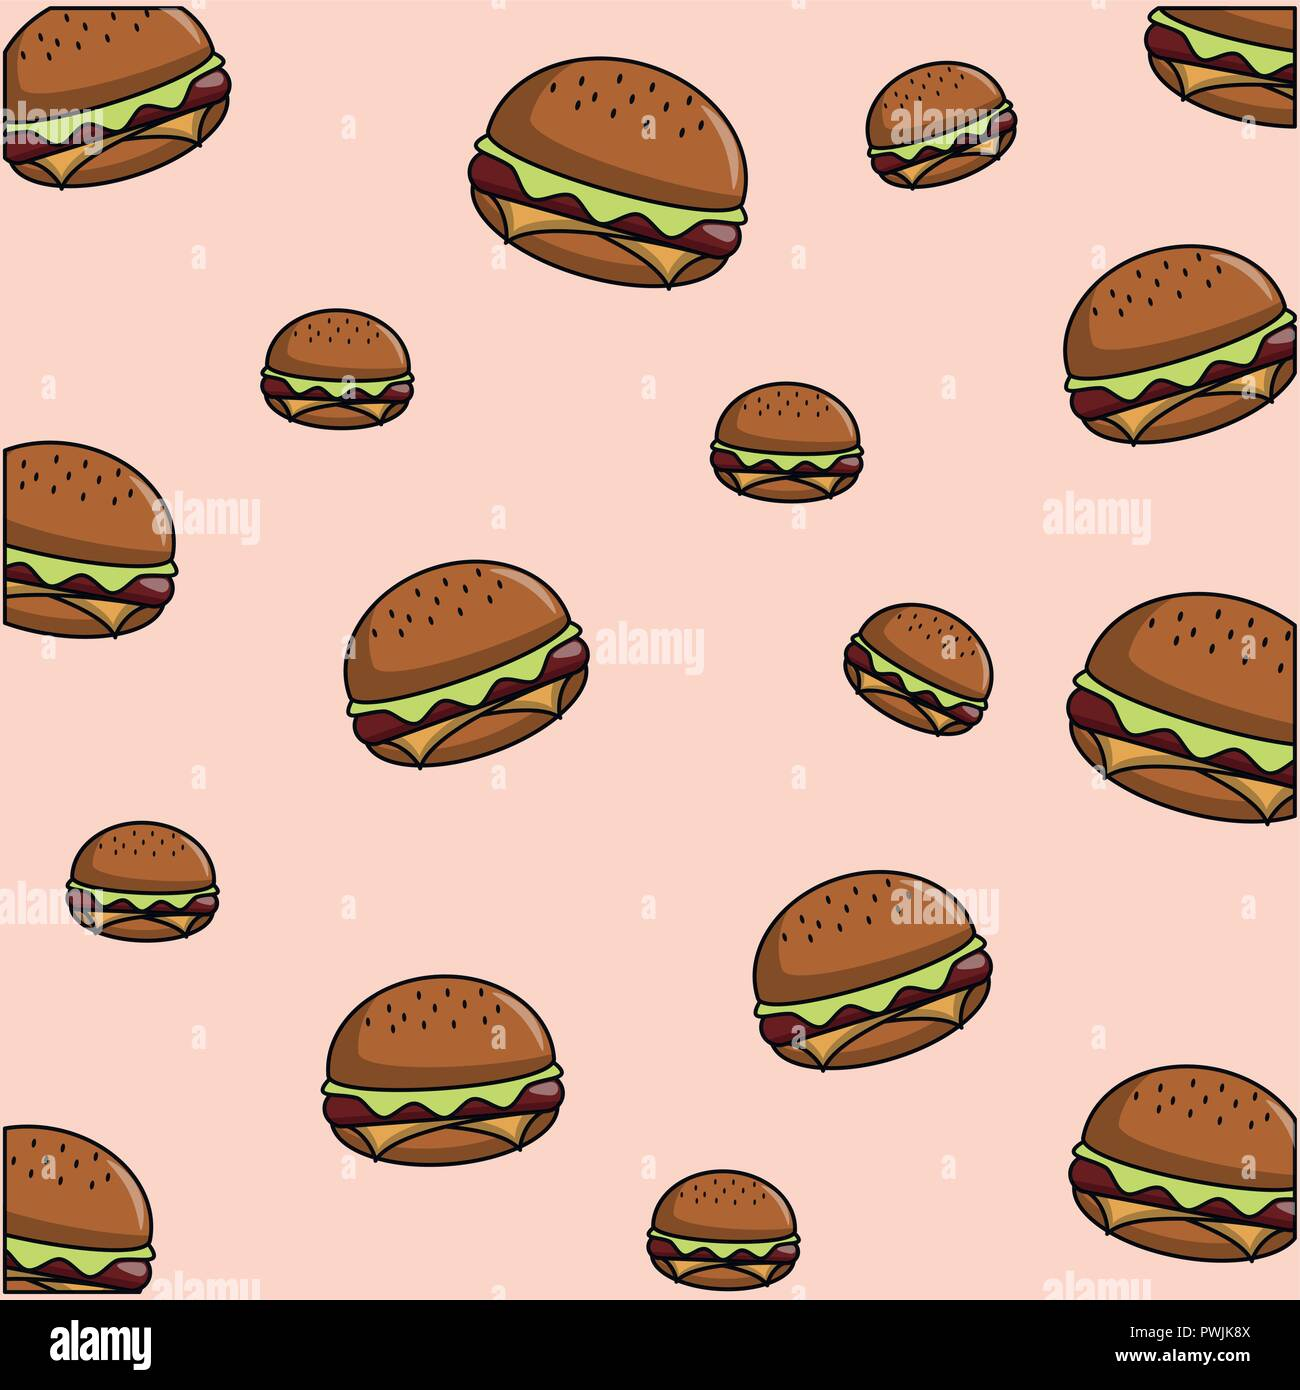 Hamburger Cheeseburger Pattern Theme Colored Wallpaper Vector Illustration Graphic Design